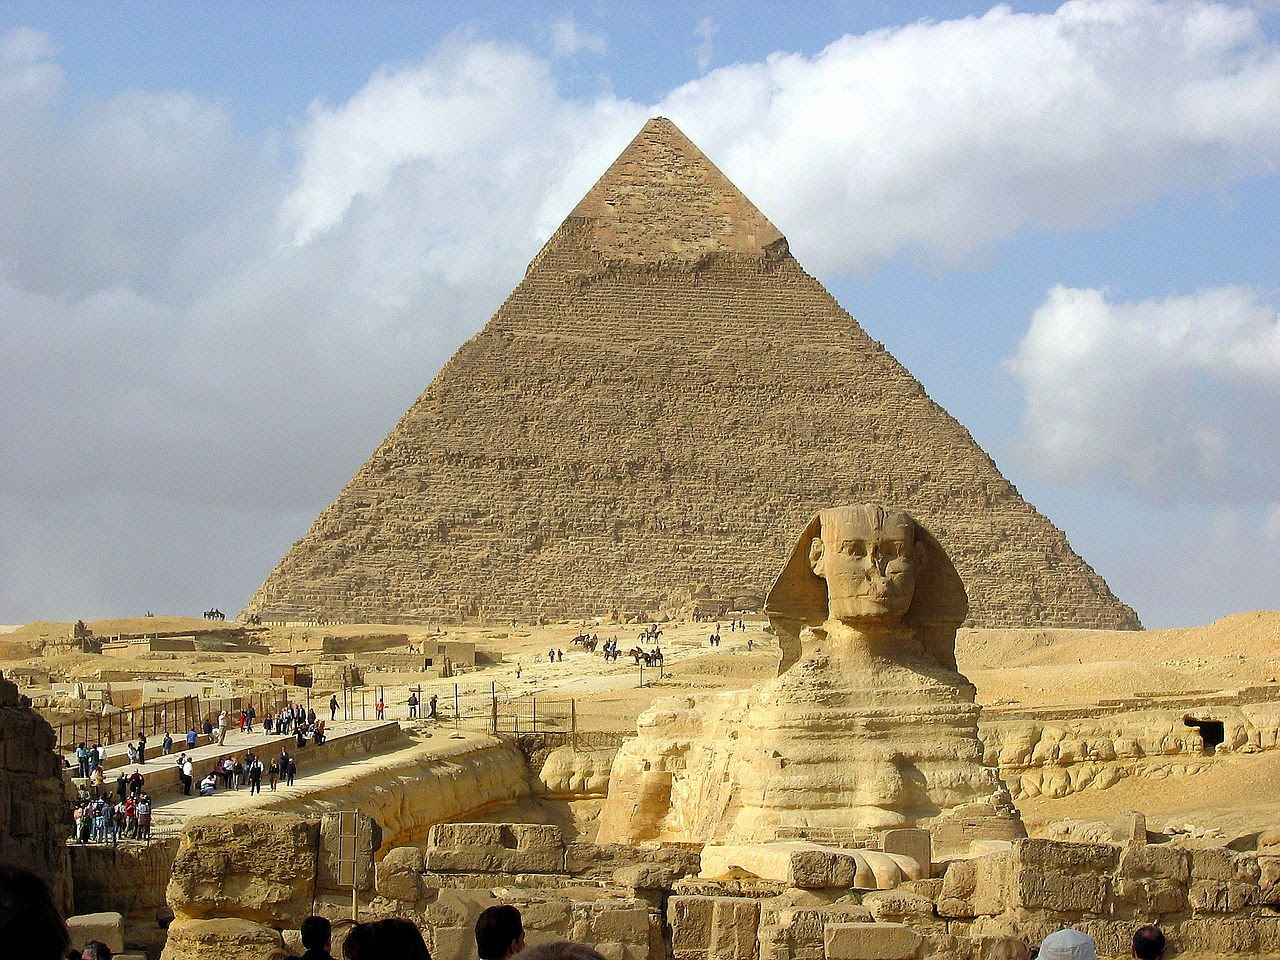 Khafre Pyramid closed for renovation